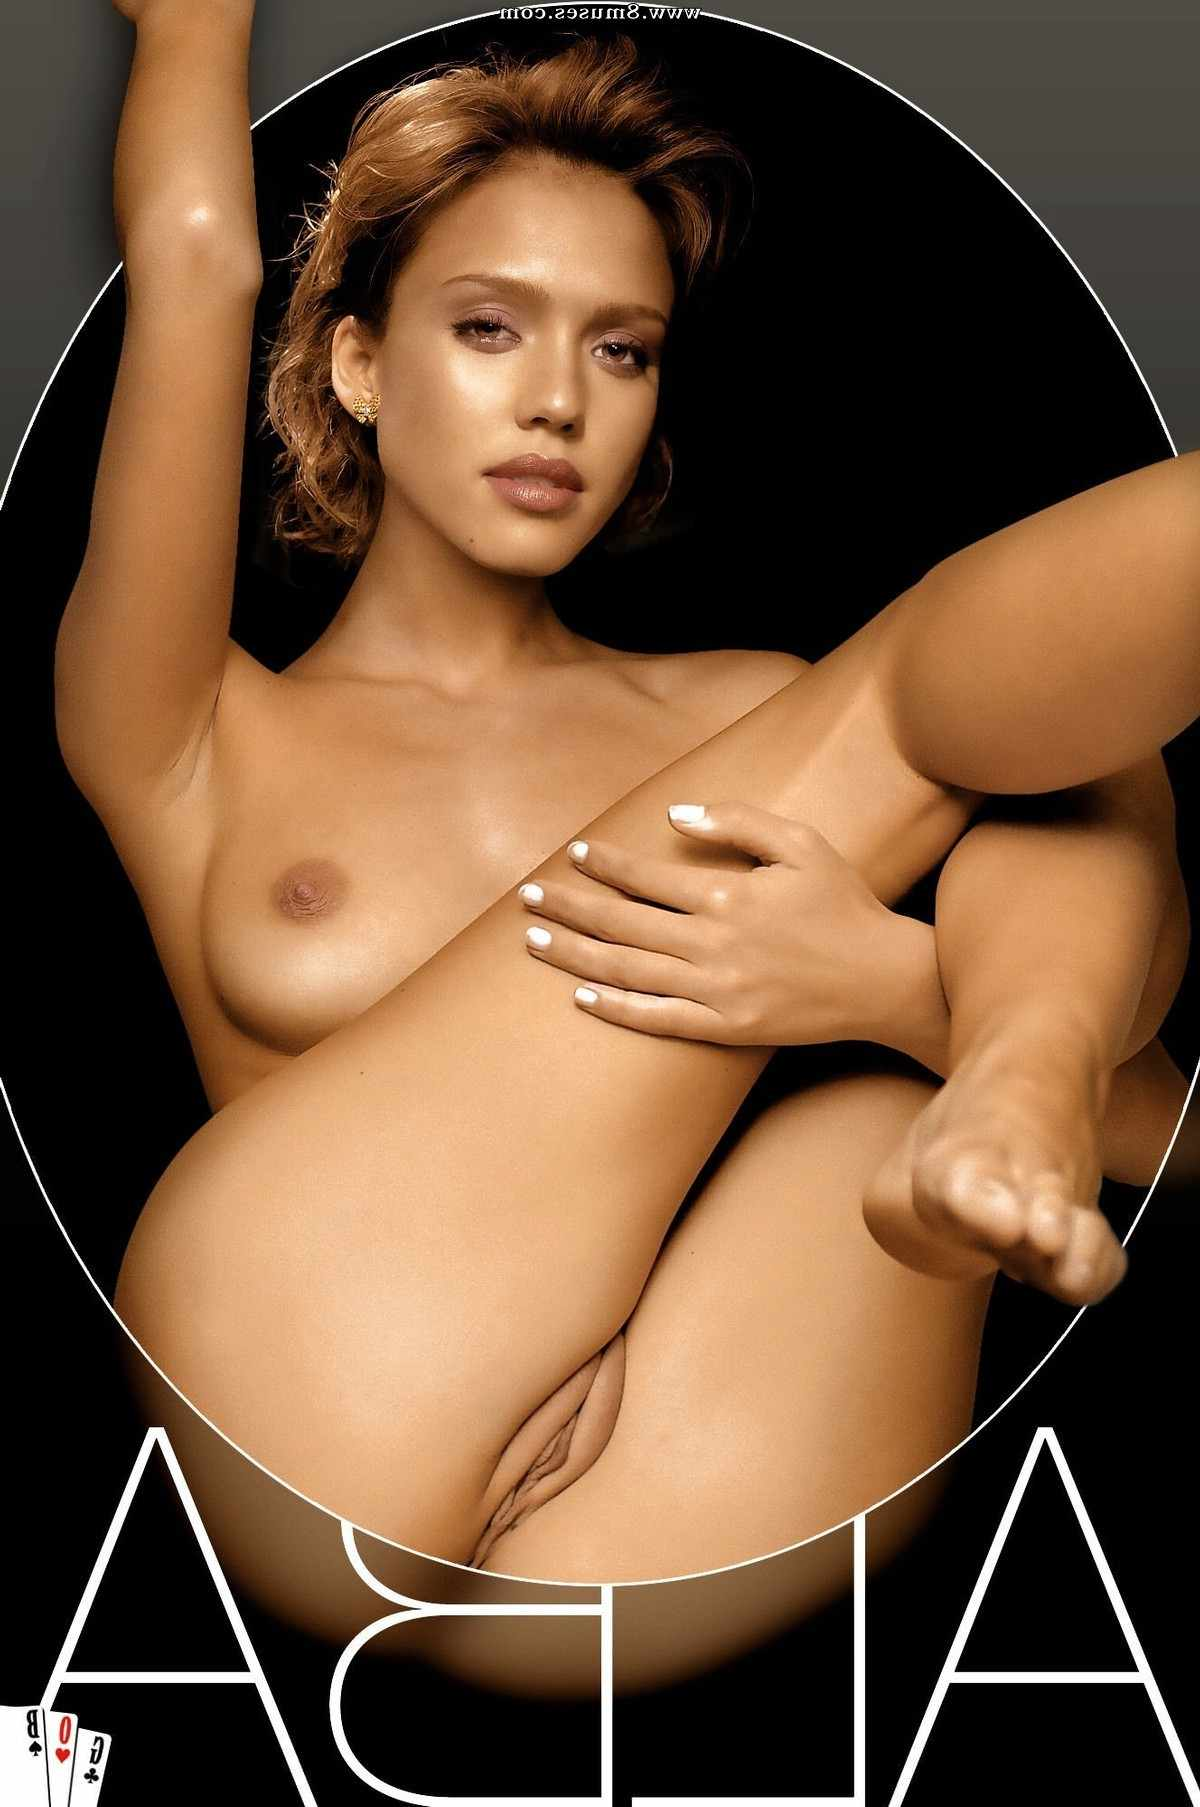 Fake-Celebrities-Sex-Pictures/Jessica-Alba Jessica_Alba__8muses_-_Sex_and_Porn_Comics_367.jpg